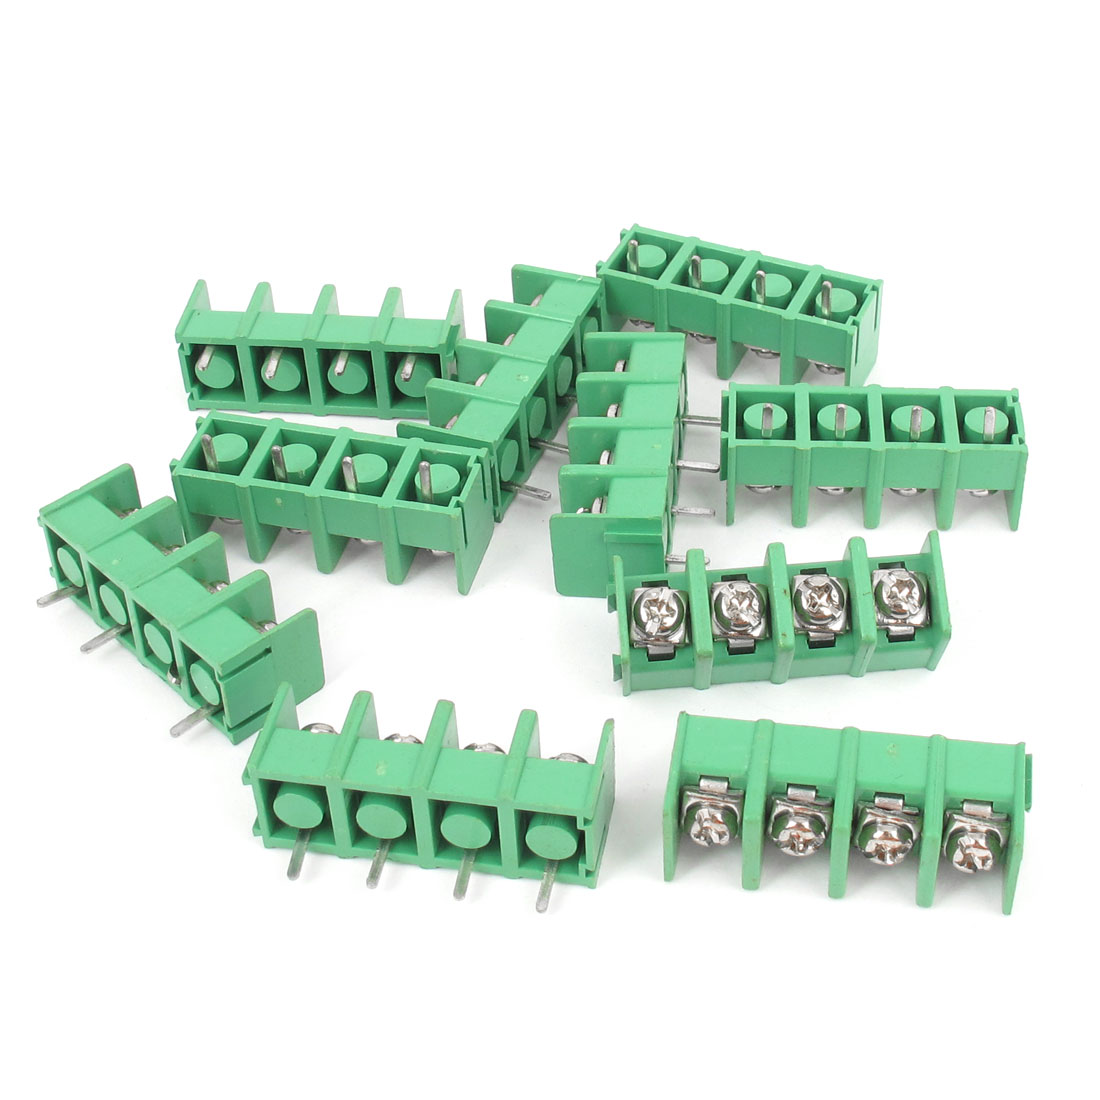 10pcs 4-Way 4Pin PCB Mounting Screw Terminal Block Connector